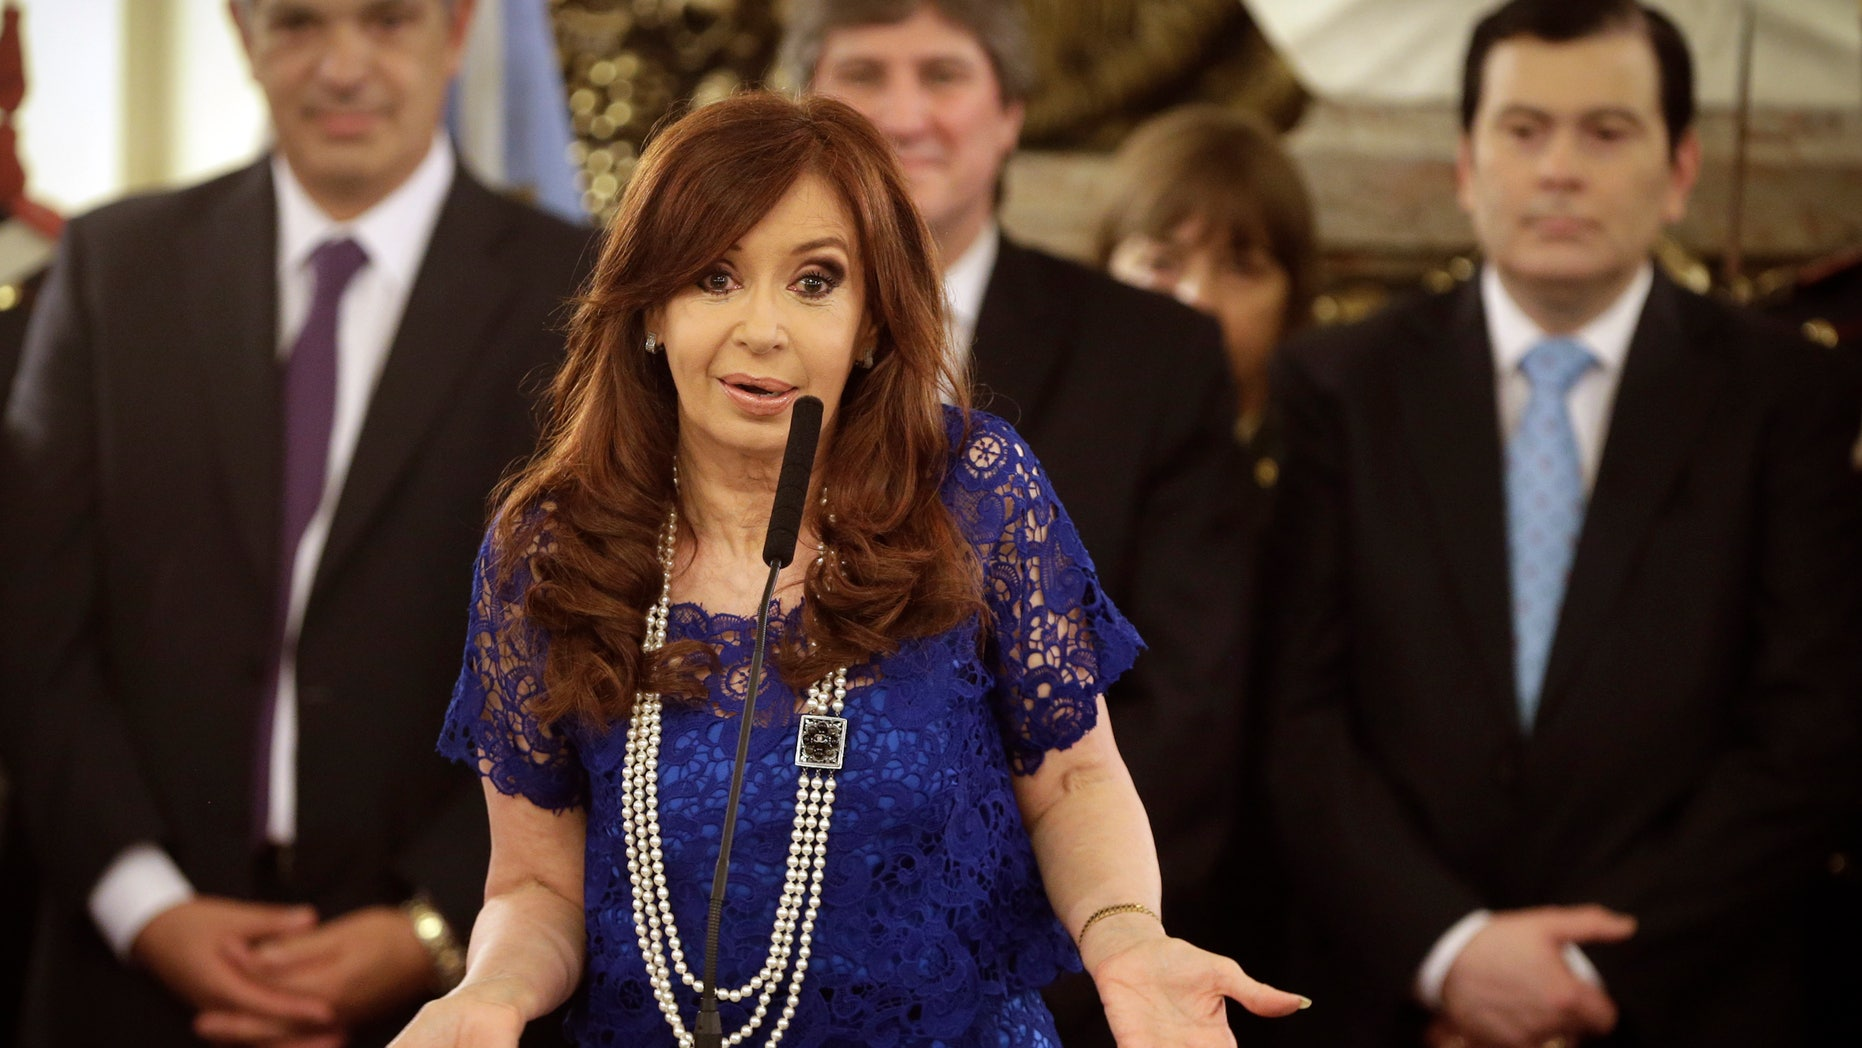 FILE - In this Feb. 26, 2015, file photo, Argentine President Cristina Fernandez speaks after the swearing-in ceremony for several new cabinet members at Casa Rosada presidential palace in Buenos Aires, Argentina. On Thursday, March 26, 2015, a federal appeals court in Argentina has thrown out a case that accused President Cristina Fernandez of orchestrating a deal to cover up the alleged role of Iranian officials in the 1994 bombing of a Jewish community center. (AP Photo/Victor R. Caivano, File)